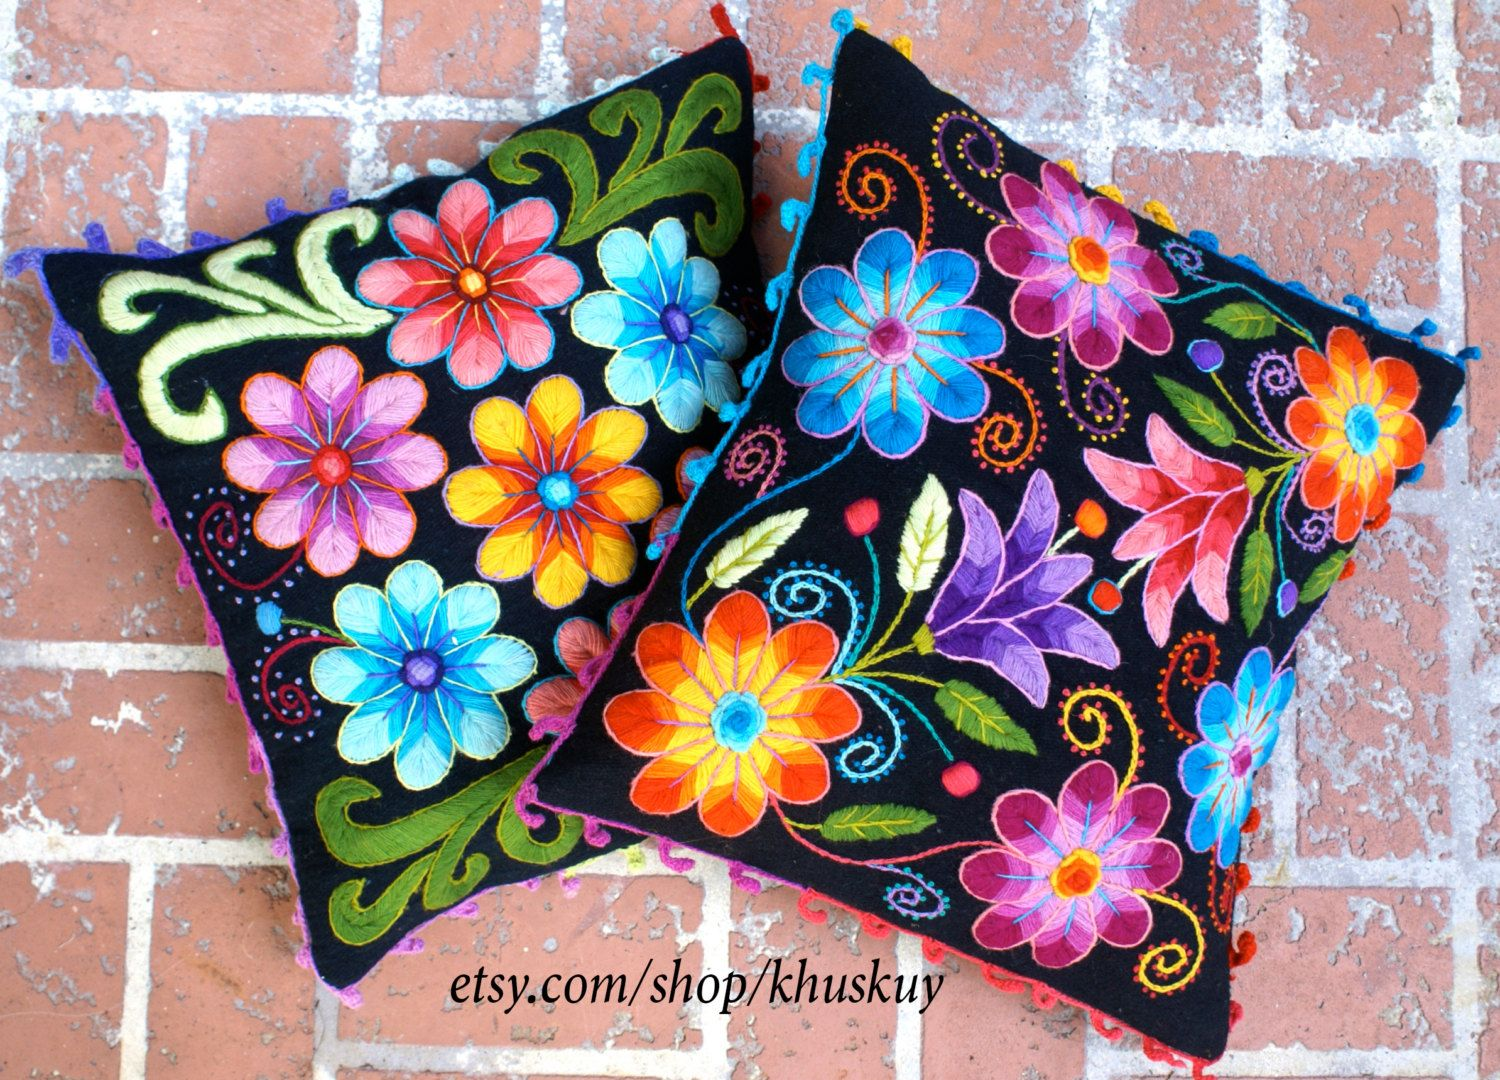 Peruvian pillow cushion covers hand embroidered flowers sheep